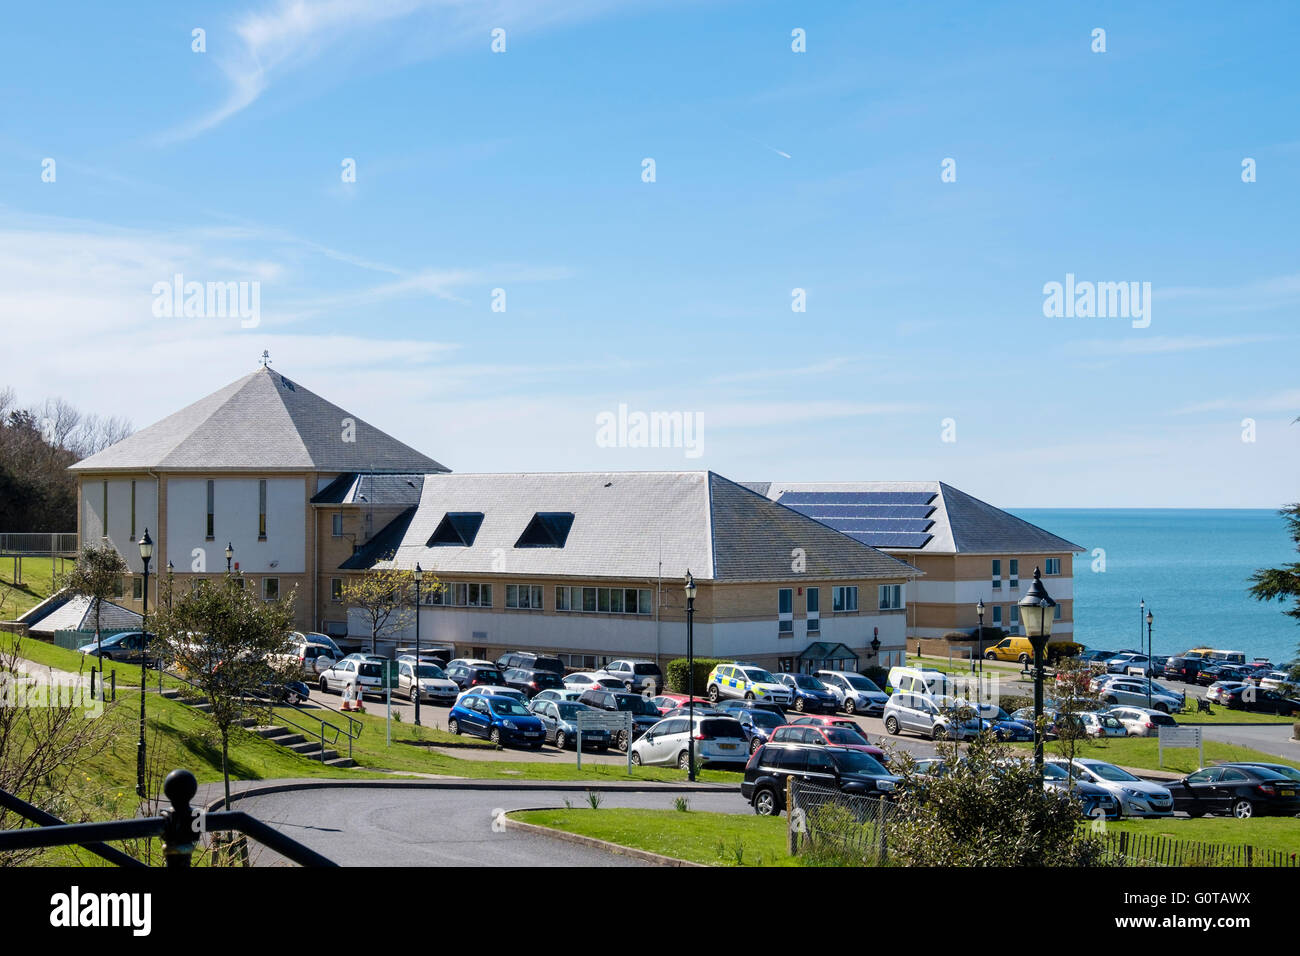 Cyngor Sir Ceredigion County Council offices in Penmorfa, Aberaeron, Ceredigion, Mid Wales, UK, Britain - Stock Image